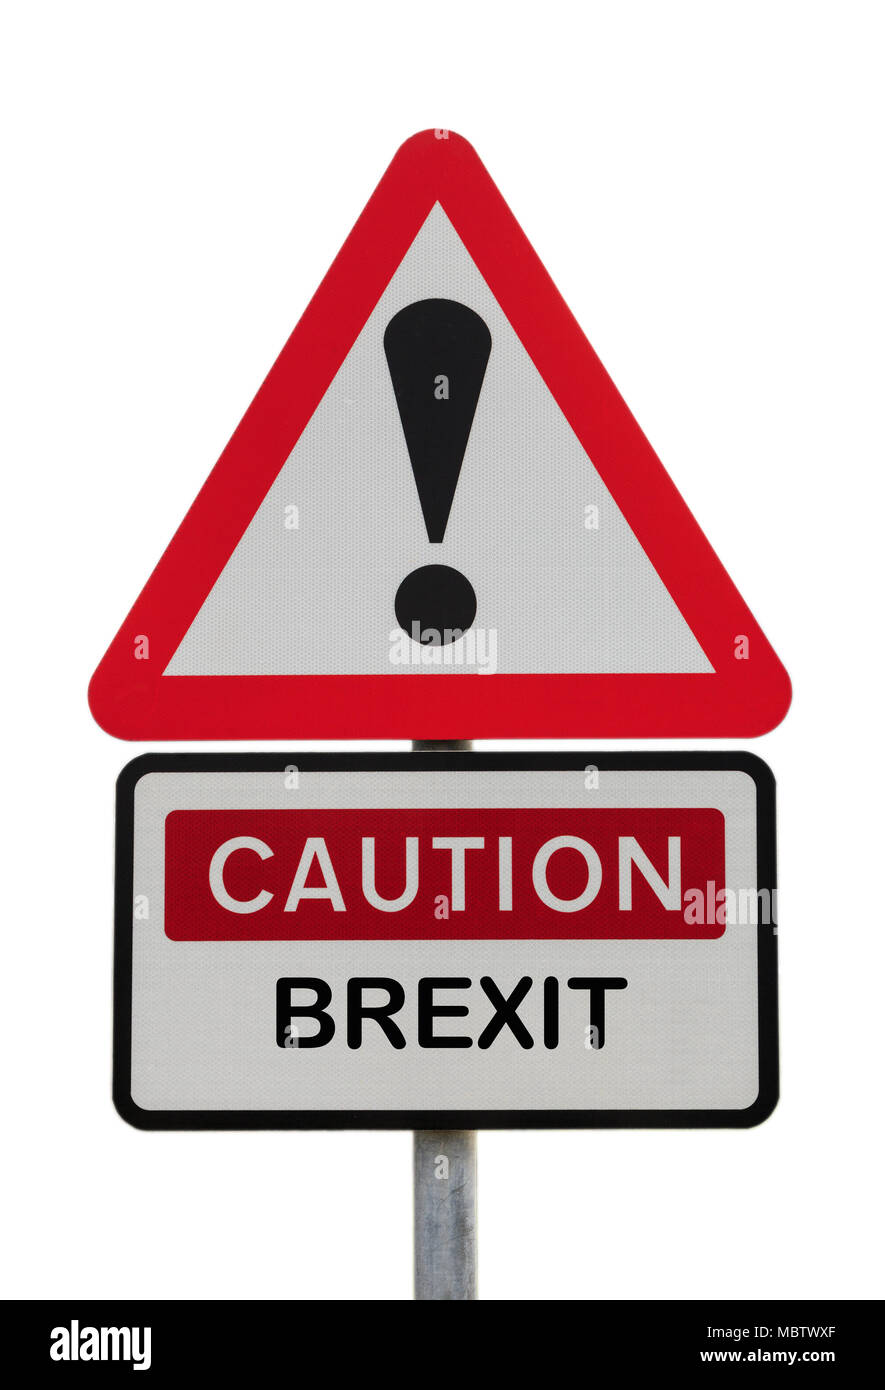 Triangular sign warning Caution Brexit with exclamation mark to illustrate financial future concept and economic change ahead. UK Great Britain Europe - Stock Image